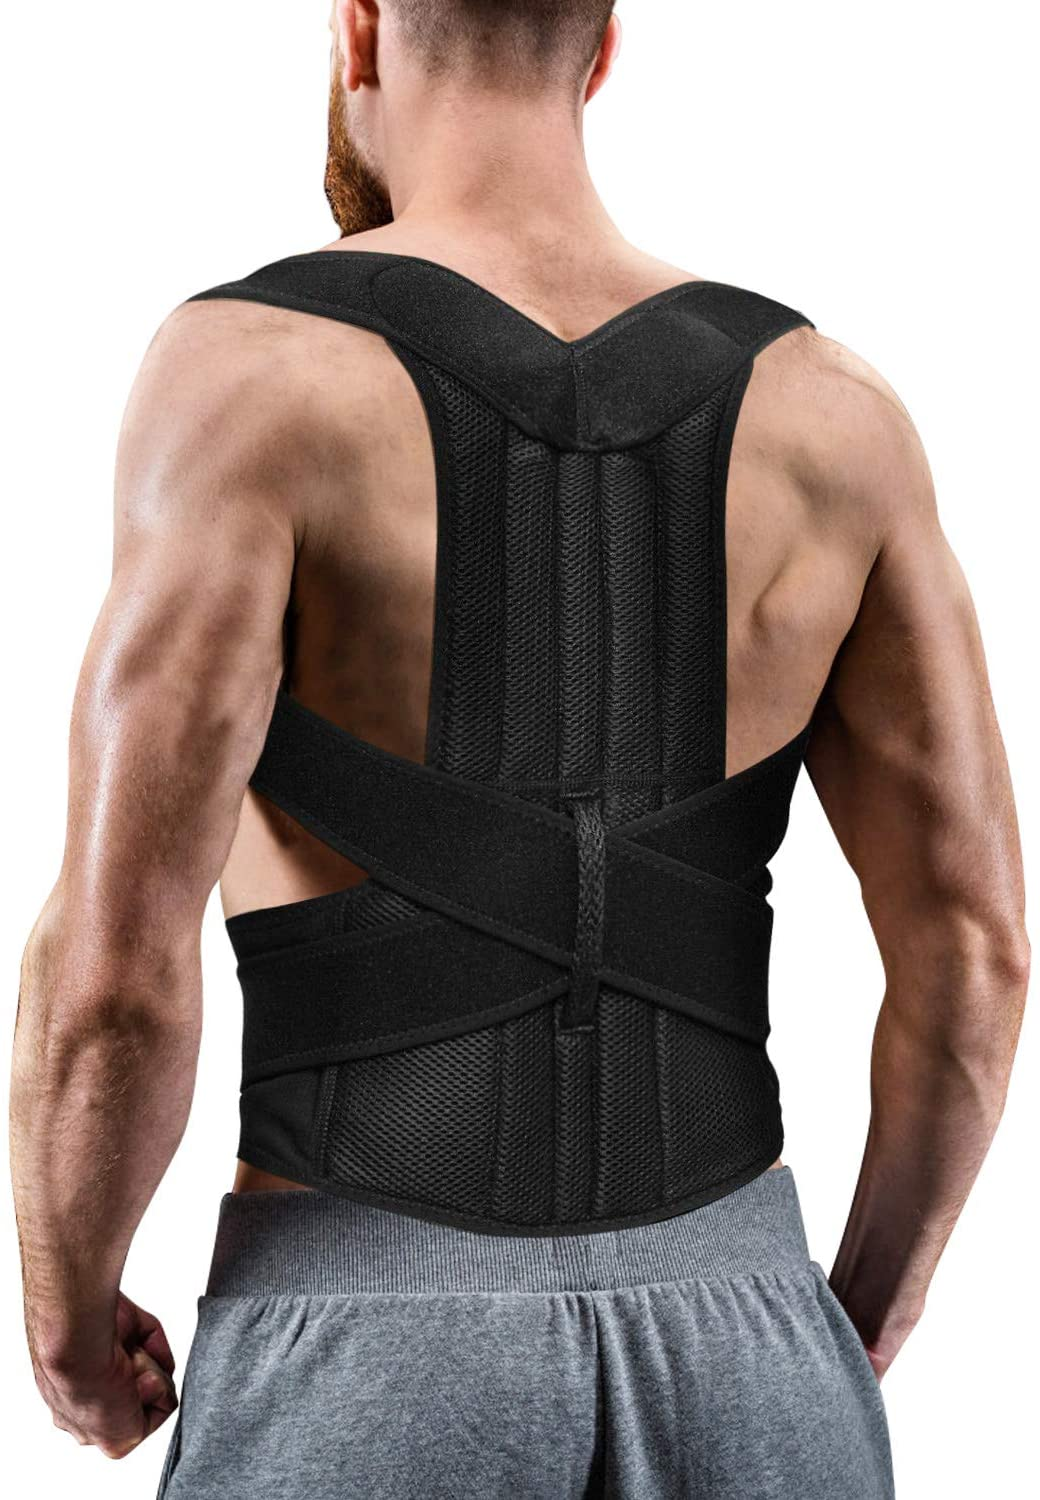 Back Posture Corrector for Women and Men, Back Braces for Upper and Lower Back Pain Relief, Adjustable and Fully Back Support Improve Back Posture